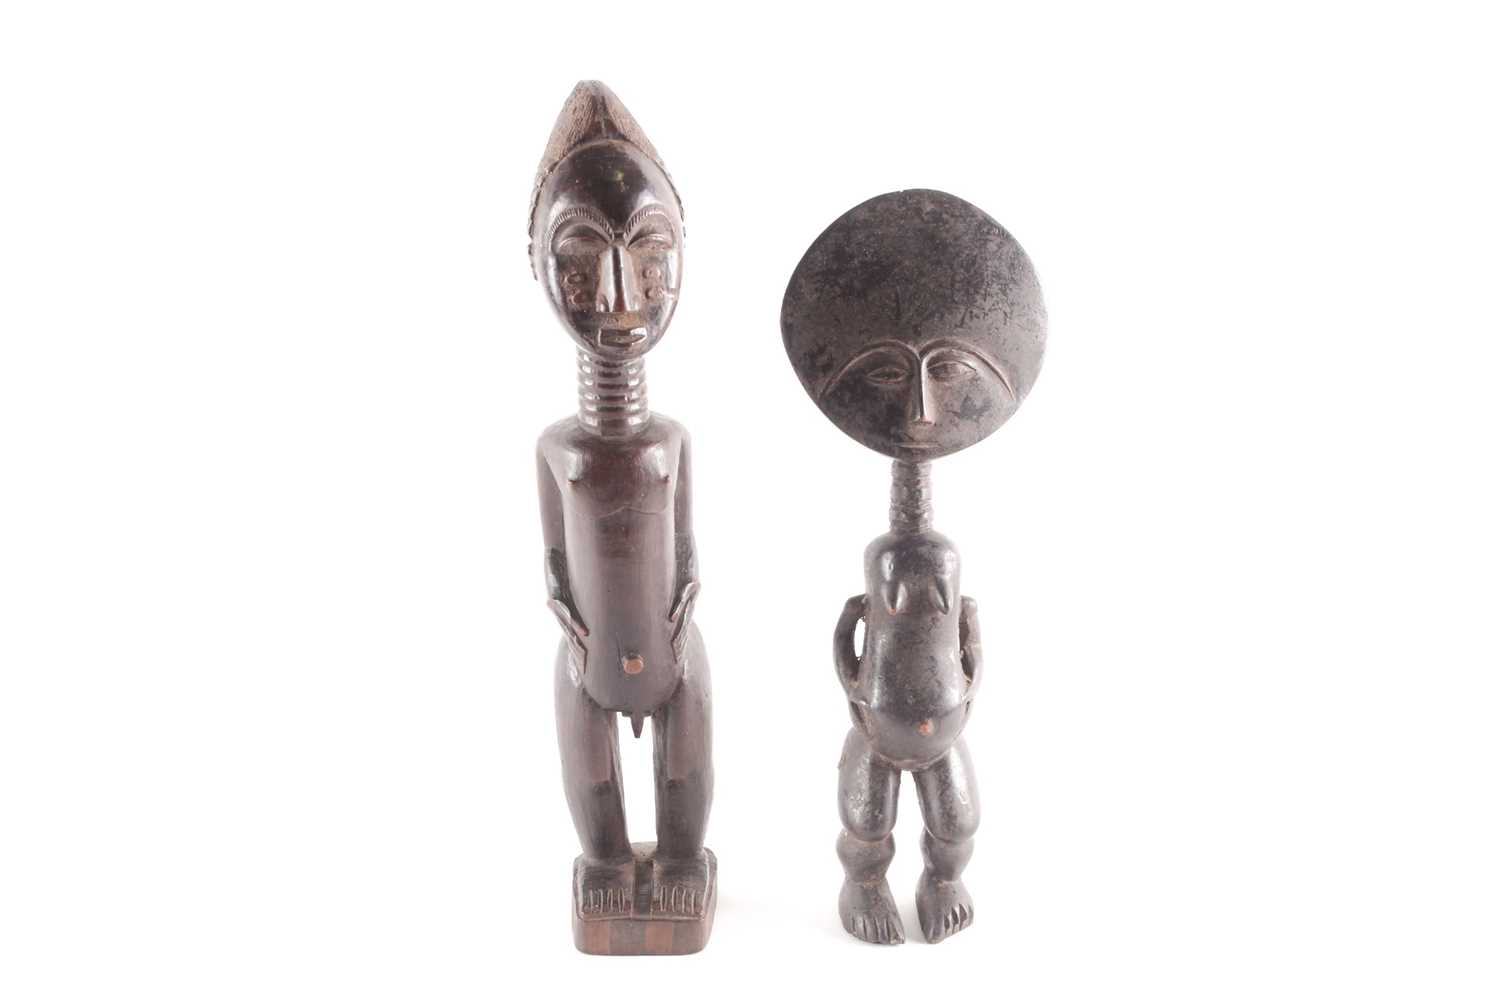 A Baule standing male figure, Blolo Bian, Ivory Coast, the coiffure with linear decoration, the face